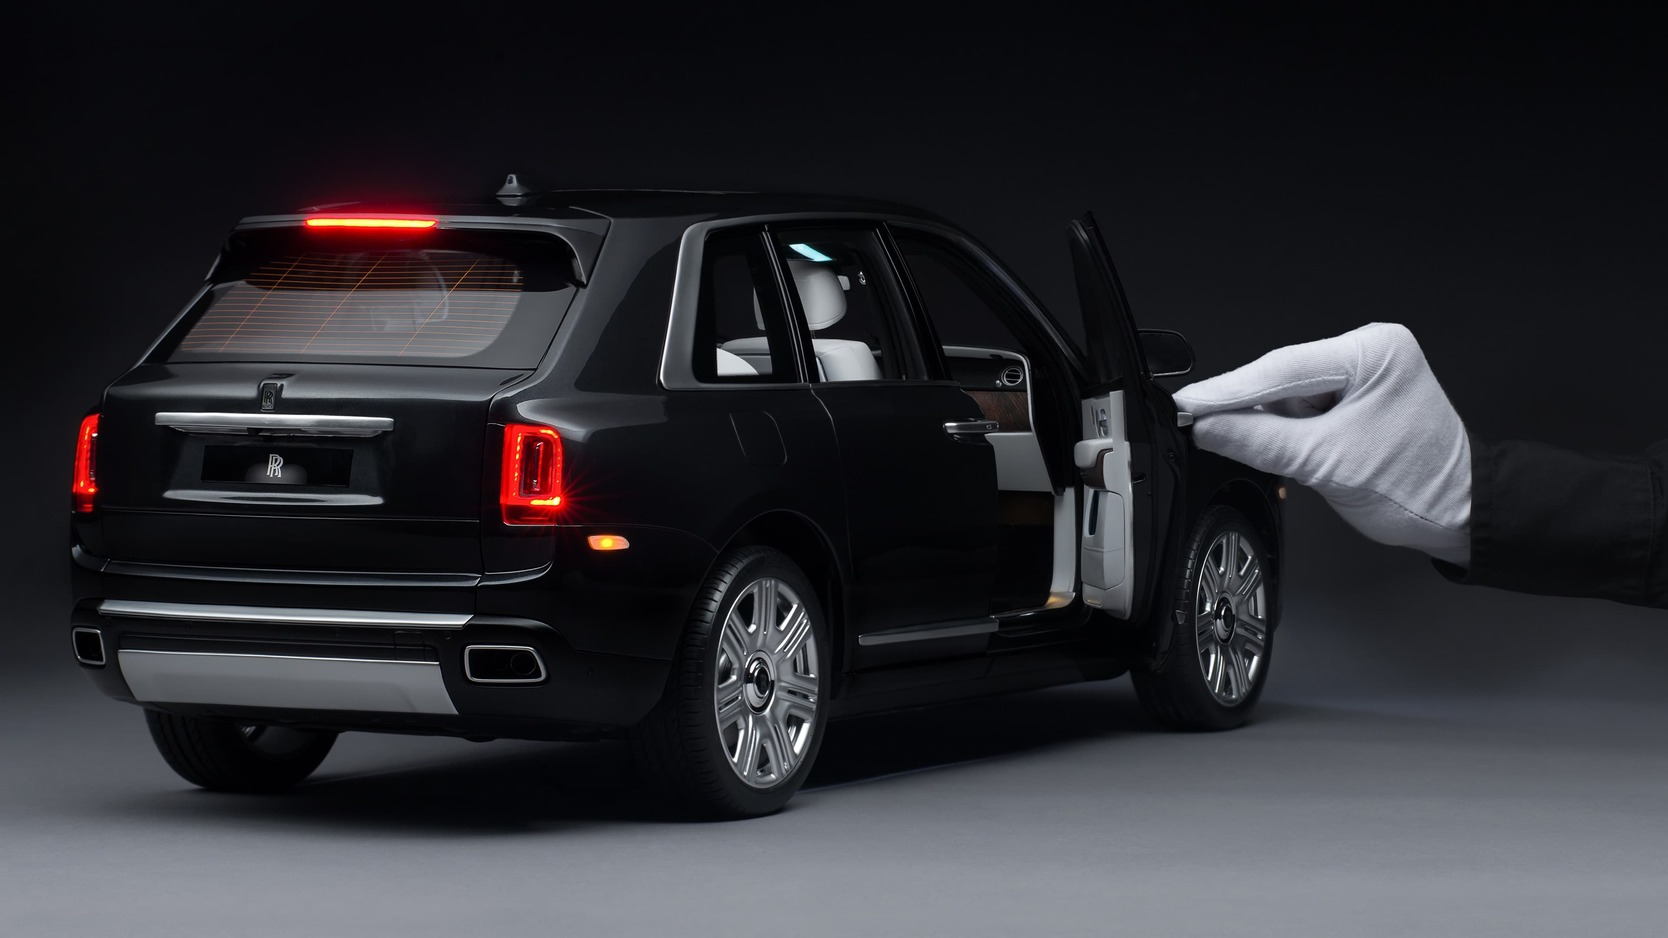 Rolls Royce Cullinan viewed from the rear